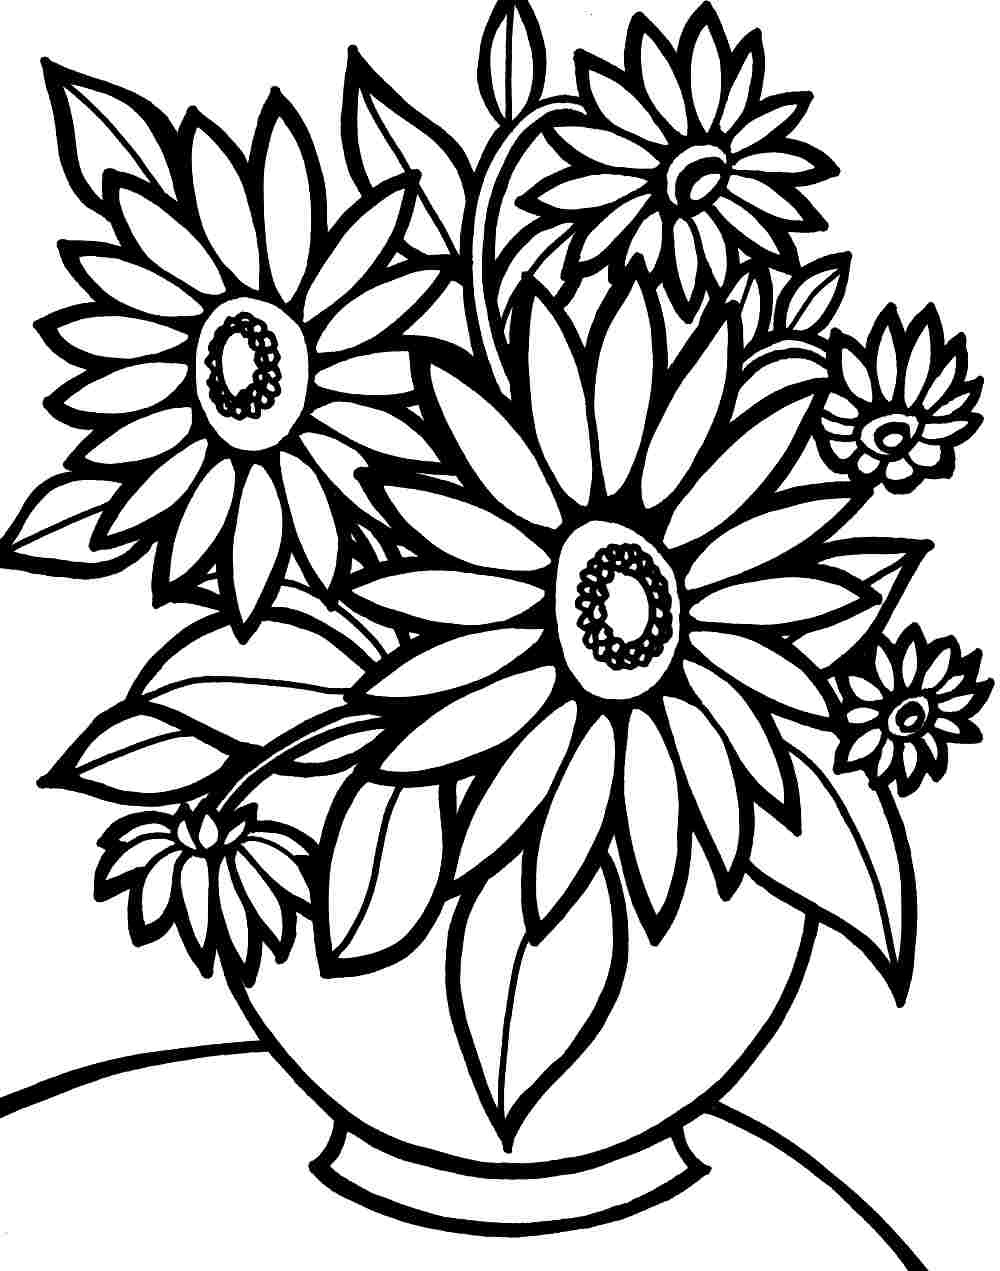 Flower Coloring Pages | Free Download Best Flower Coloring Pages On - Free Printable Flower Coloring Pages For Adults